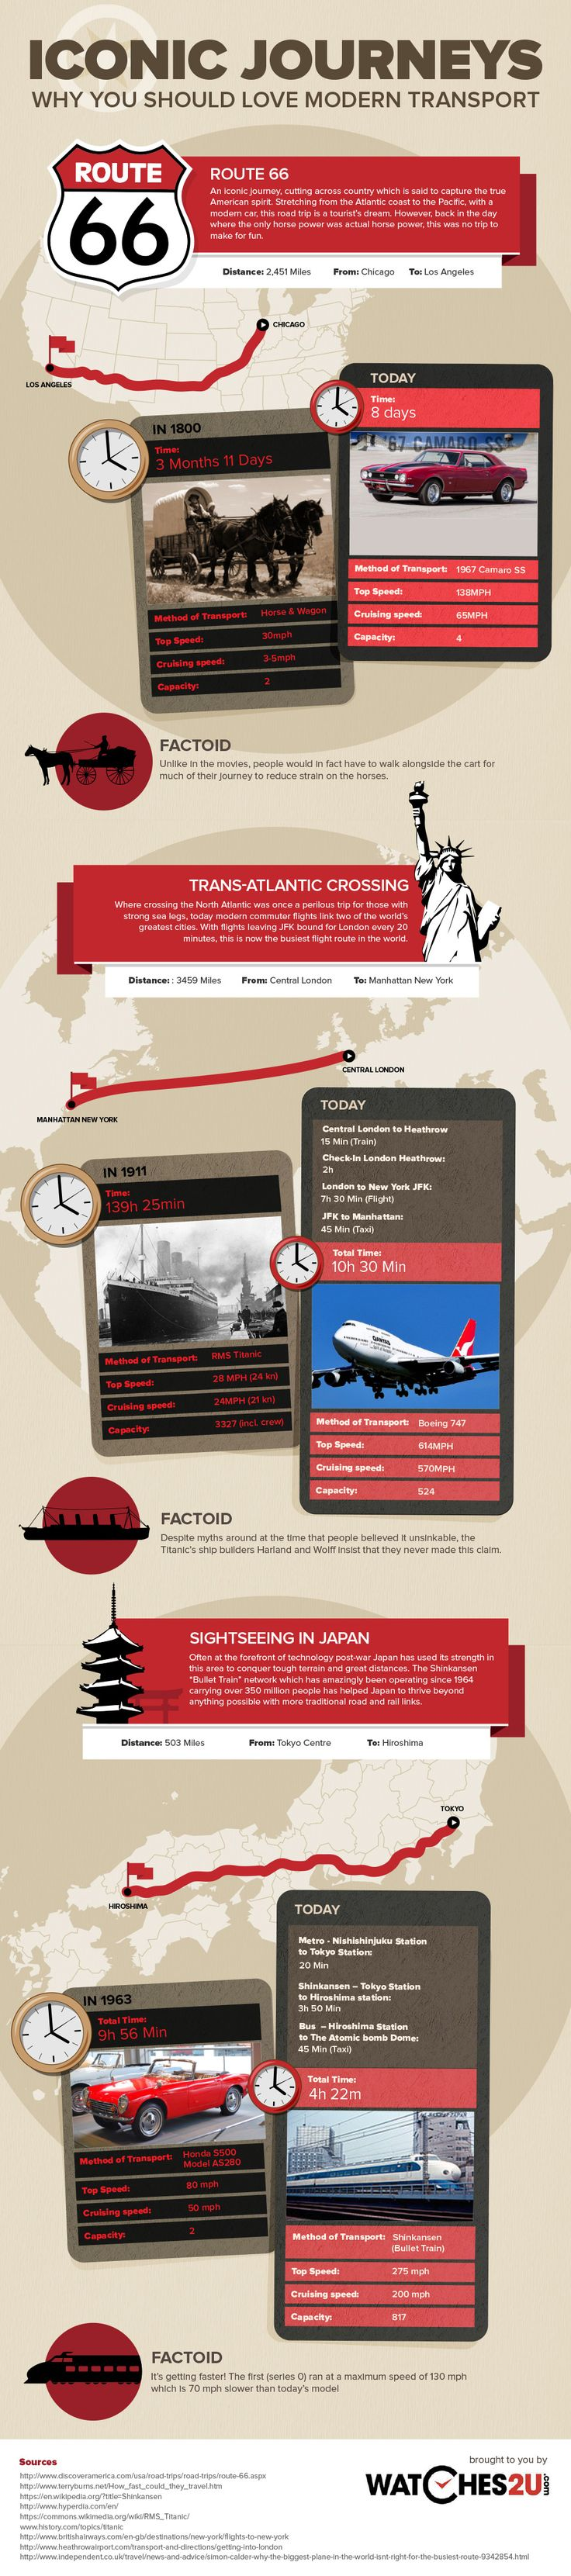 Iconic Journeys, Why You Should Love Modern Transport #infographic #Transportation